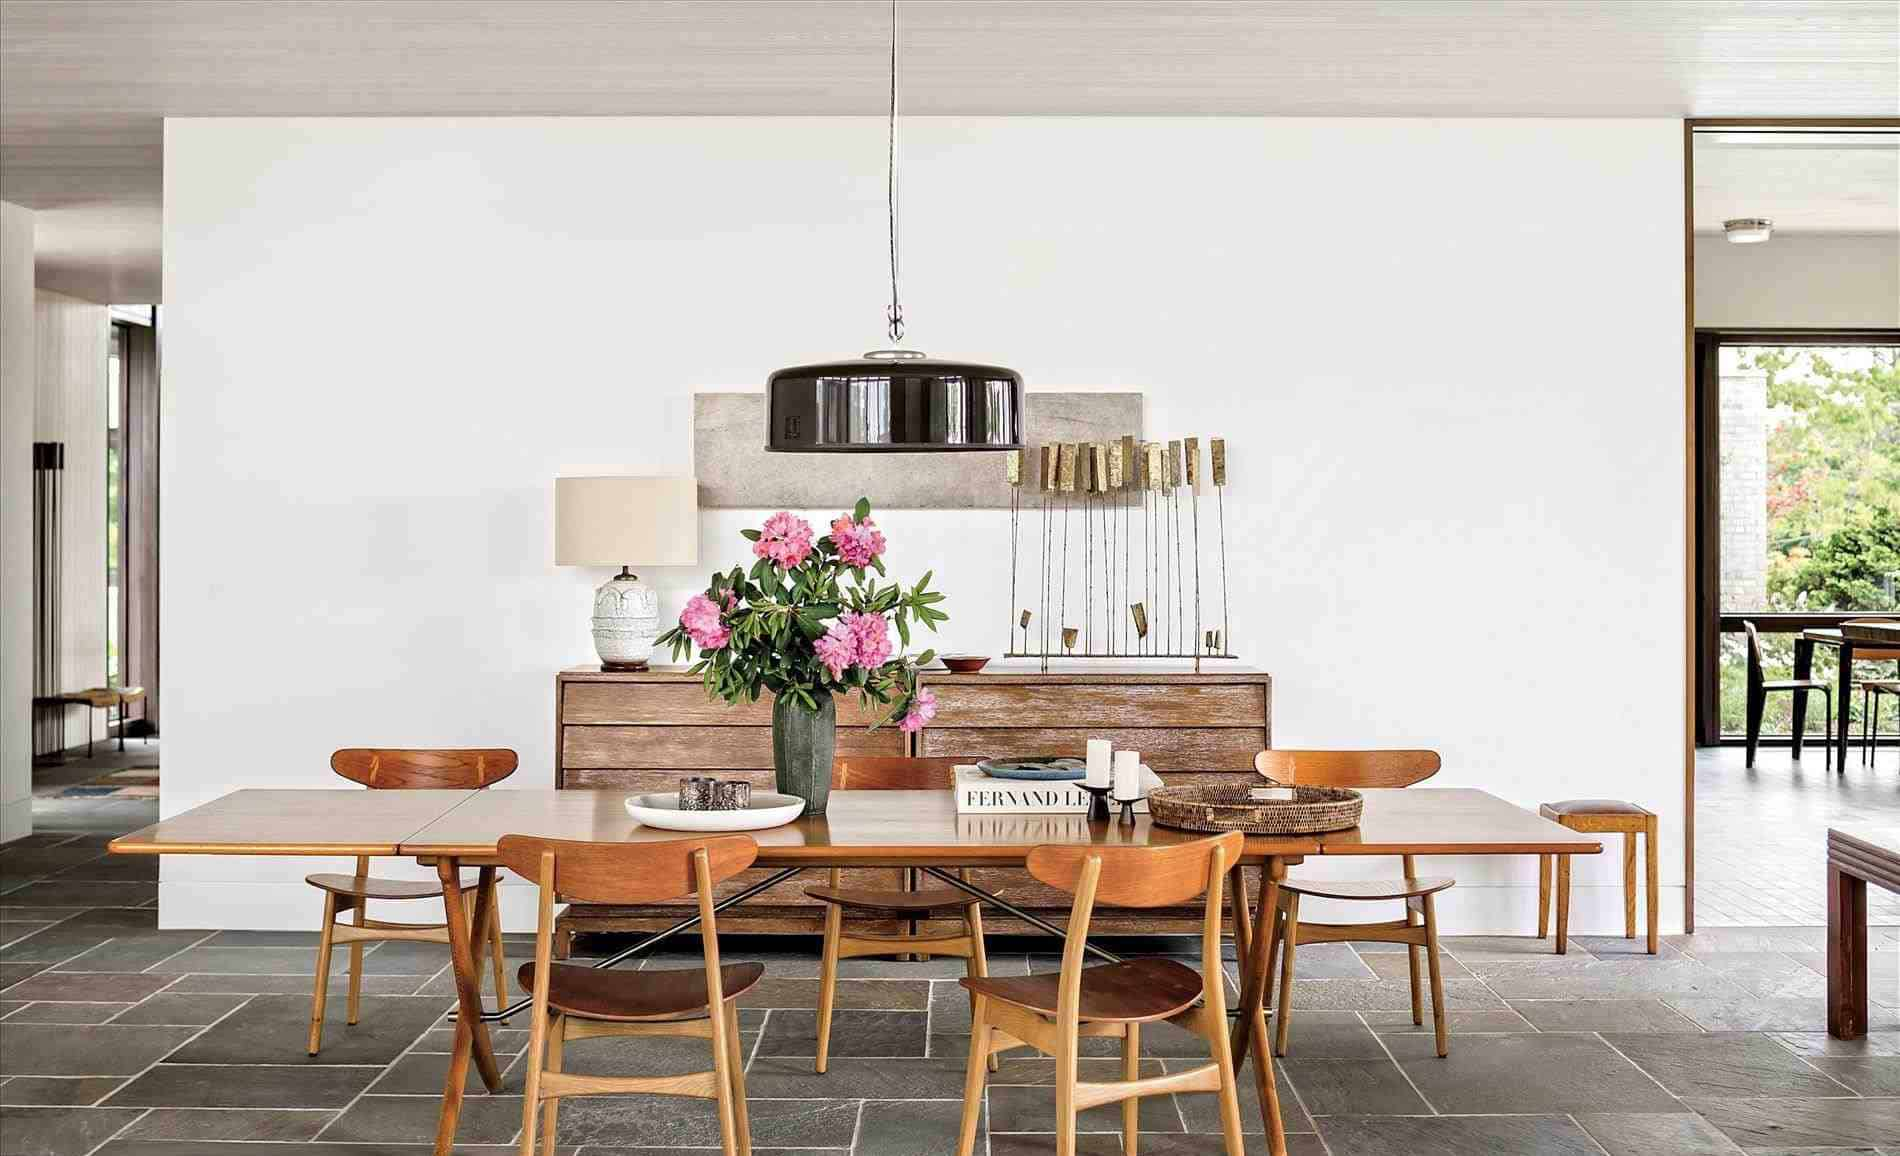 Light Fixtures 2021: Top 15 Trends to Use in Your Home Decor